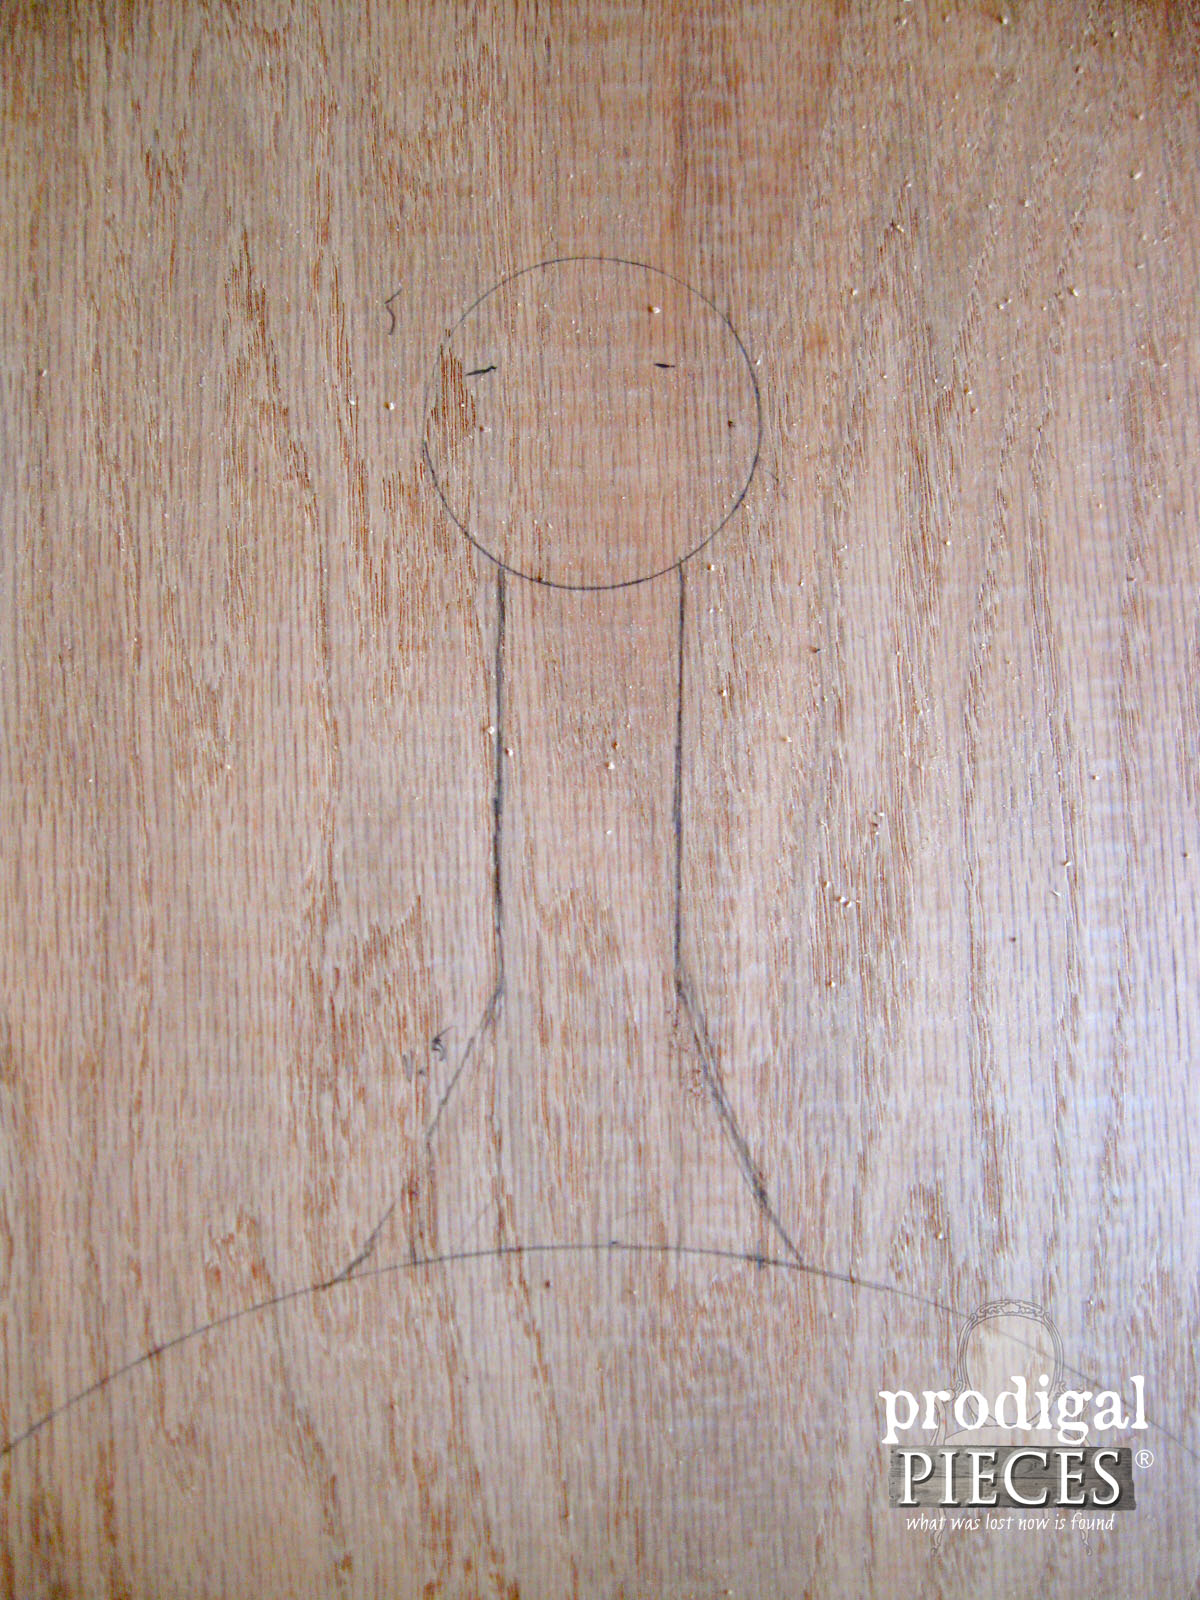 Pencil Drawing for DIY Cheese Board | Prodigal Pieces | www.prodigalpieces.com